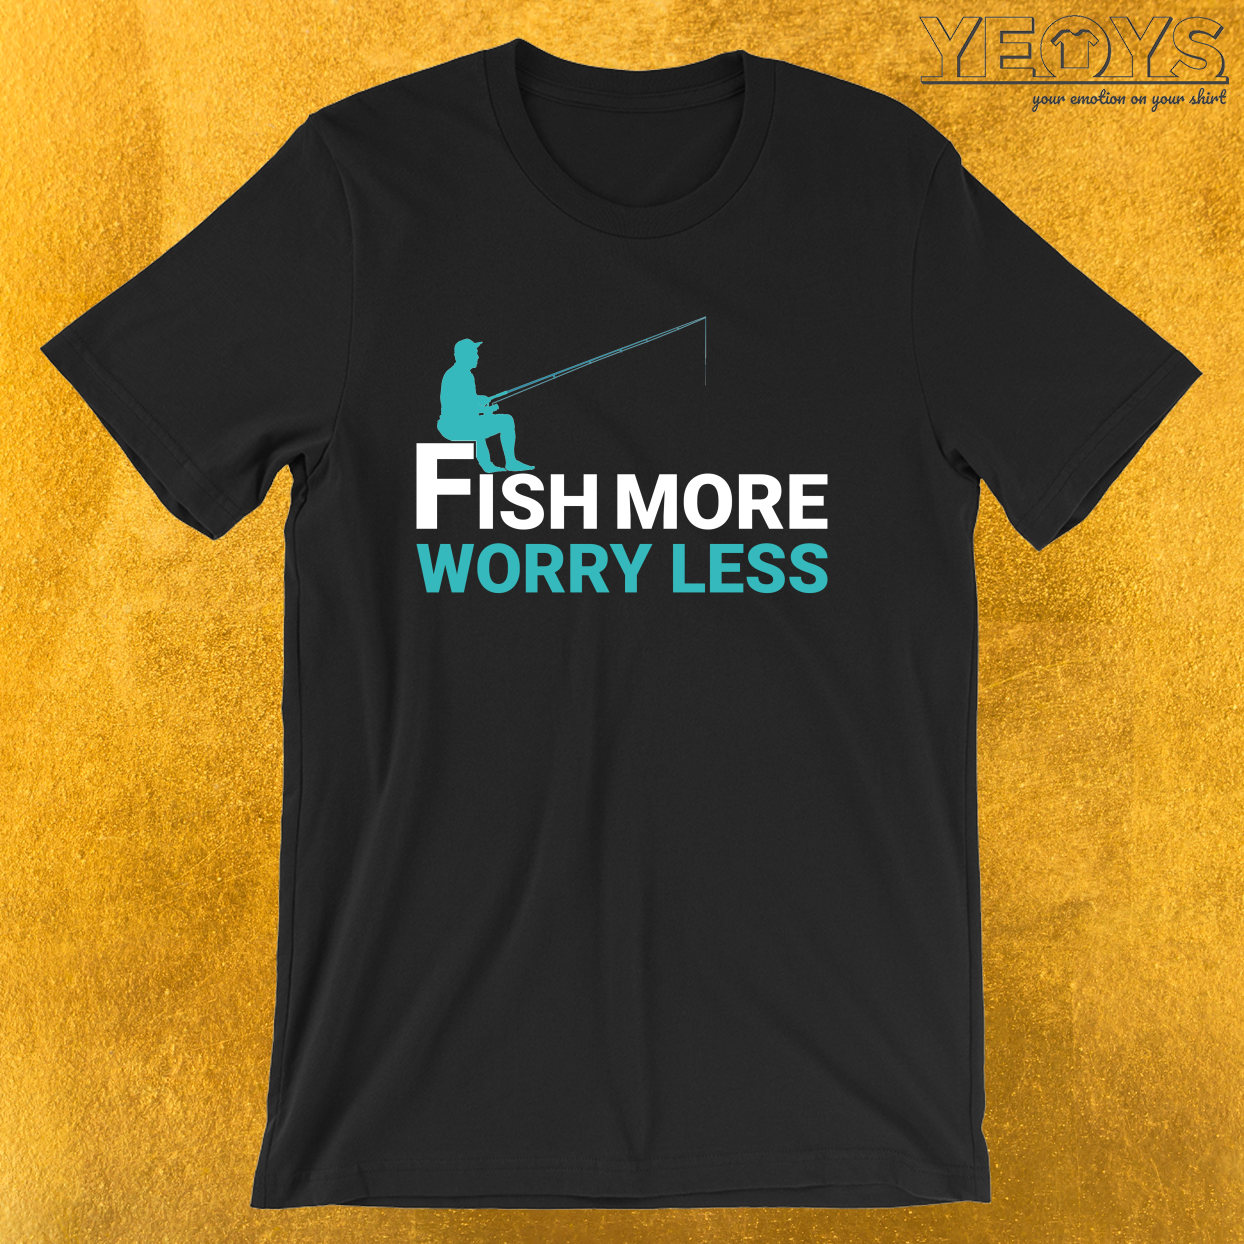 Fish More Worry Less – Old Fisherman Tee